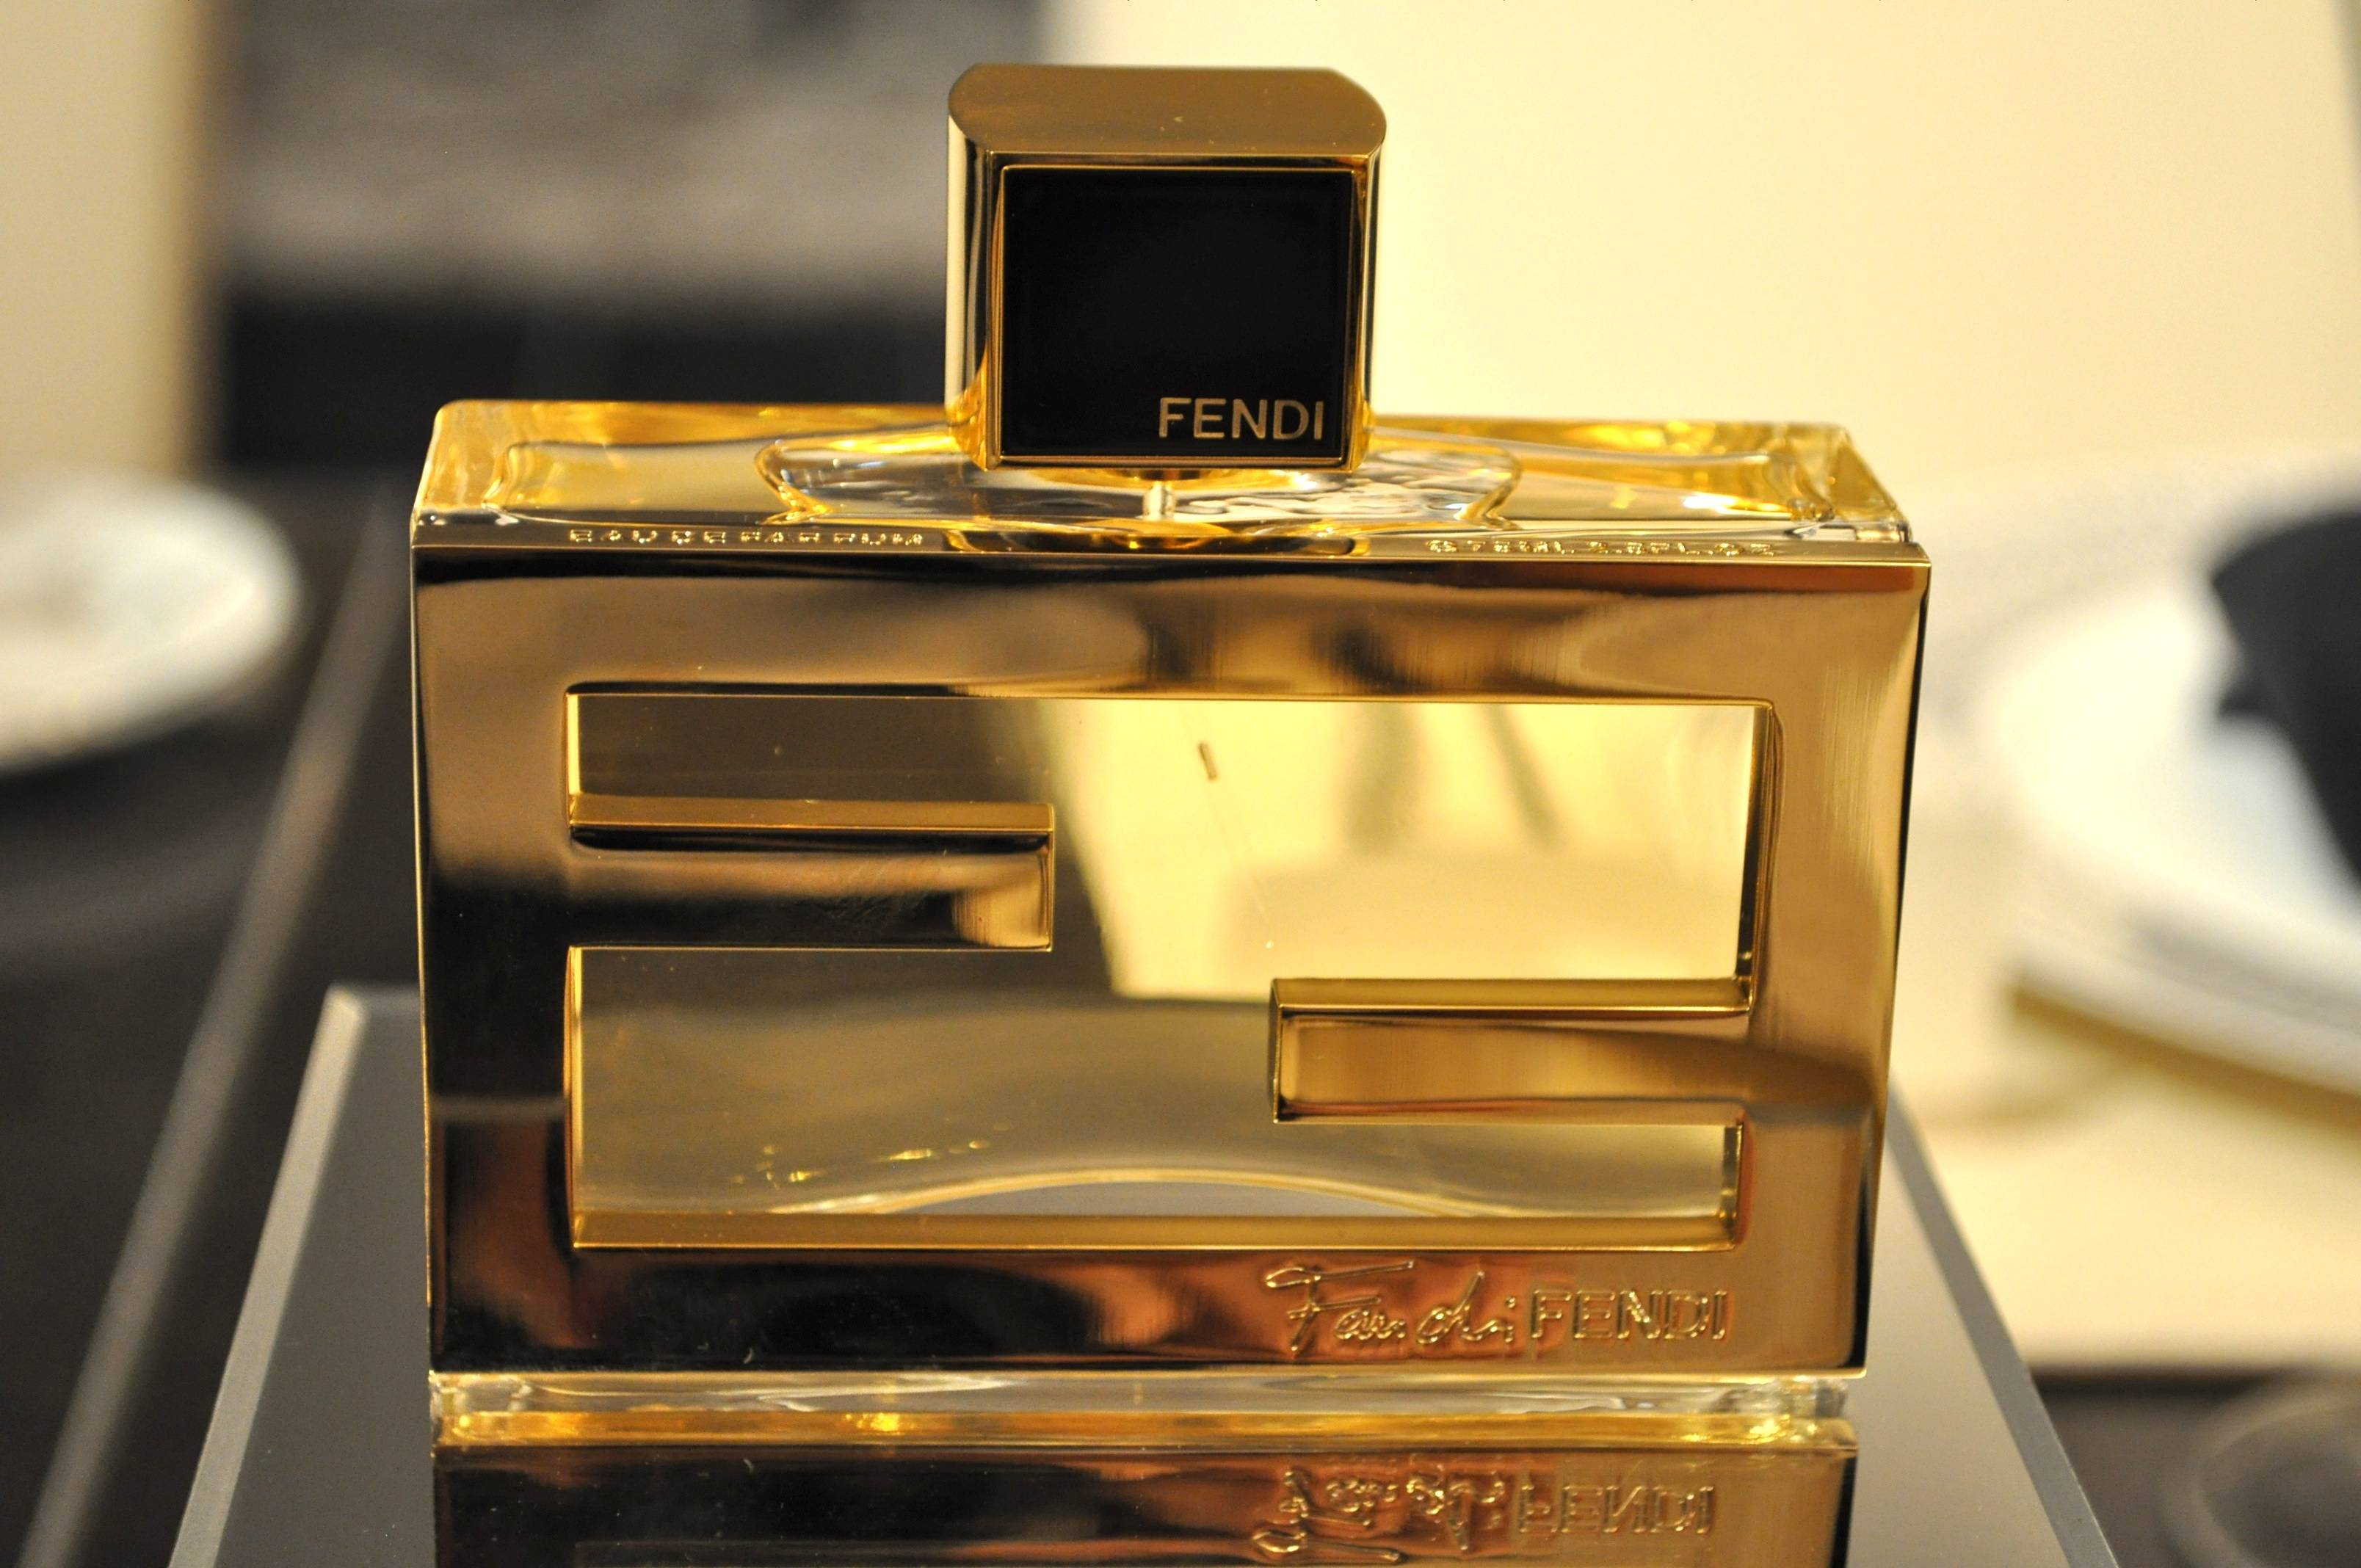 Fendi parfum dinner_MH_7640